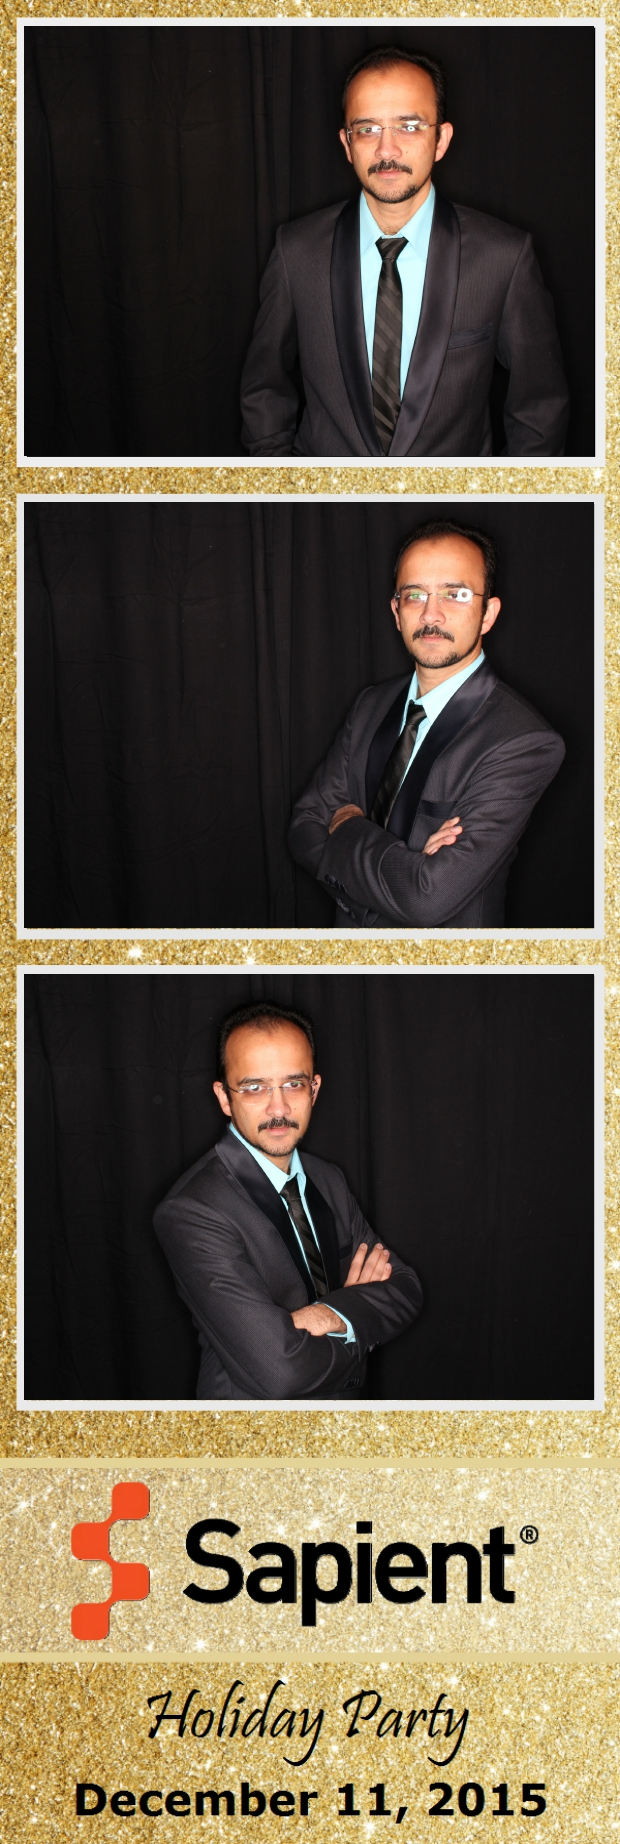 Guest House Events Photo Booth Sapient Holiday Party (5).jpg